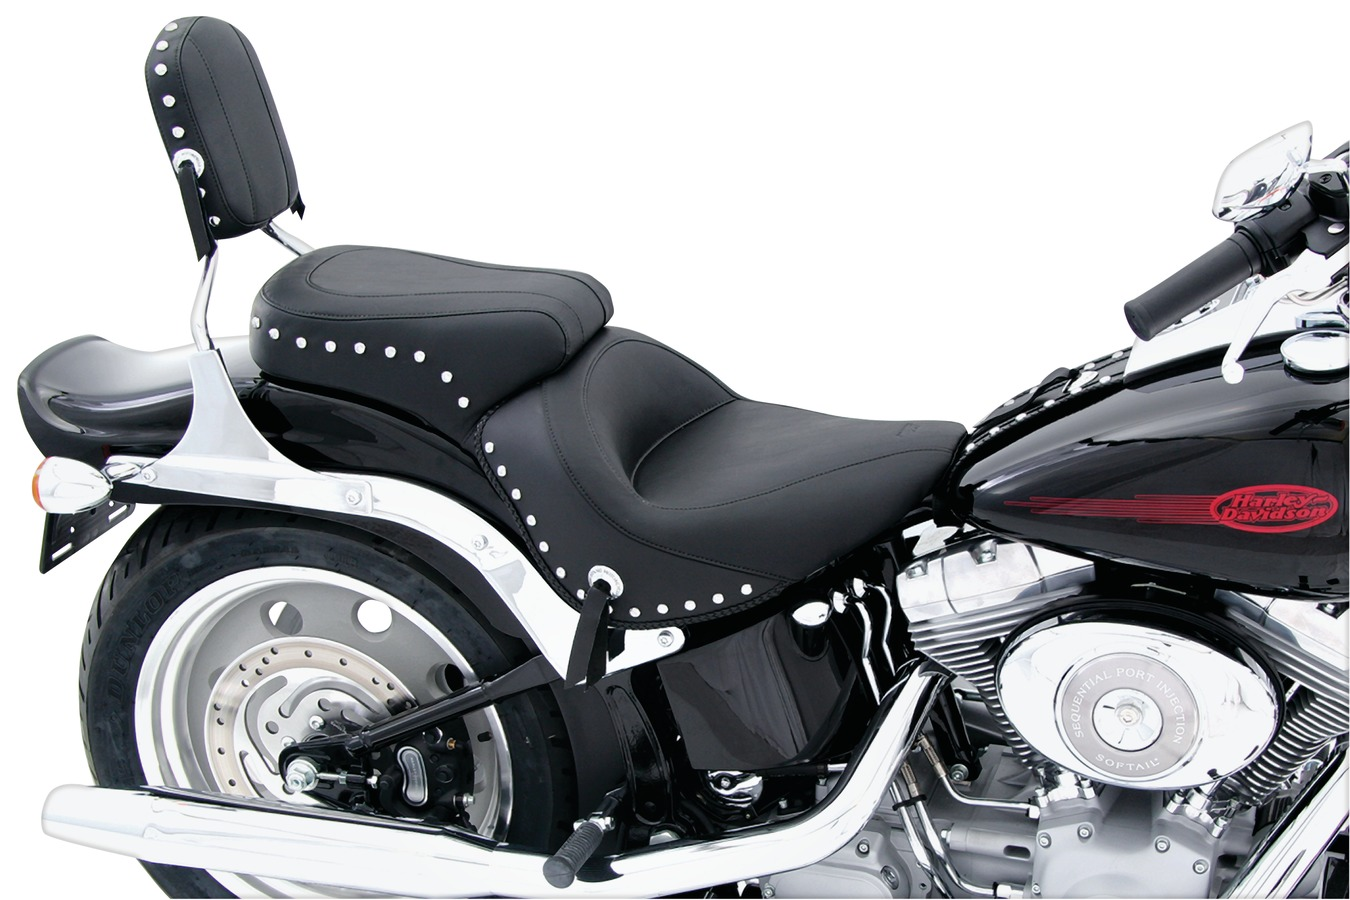 Standard Touring One-Piece Seat for Harley-Davidson Softail Wide Tire 2006-